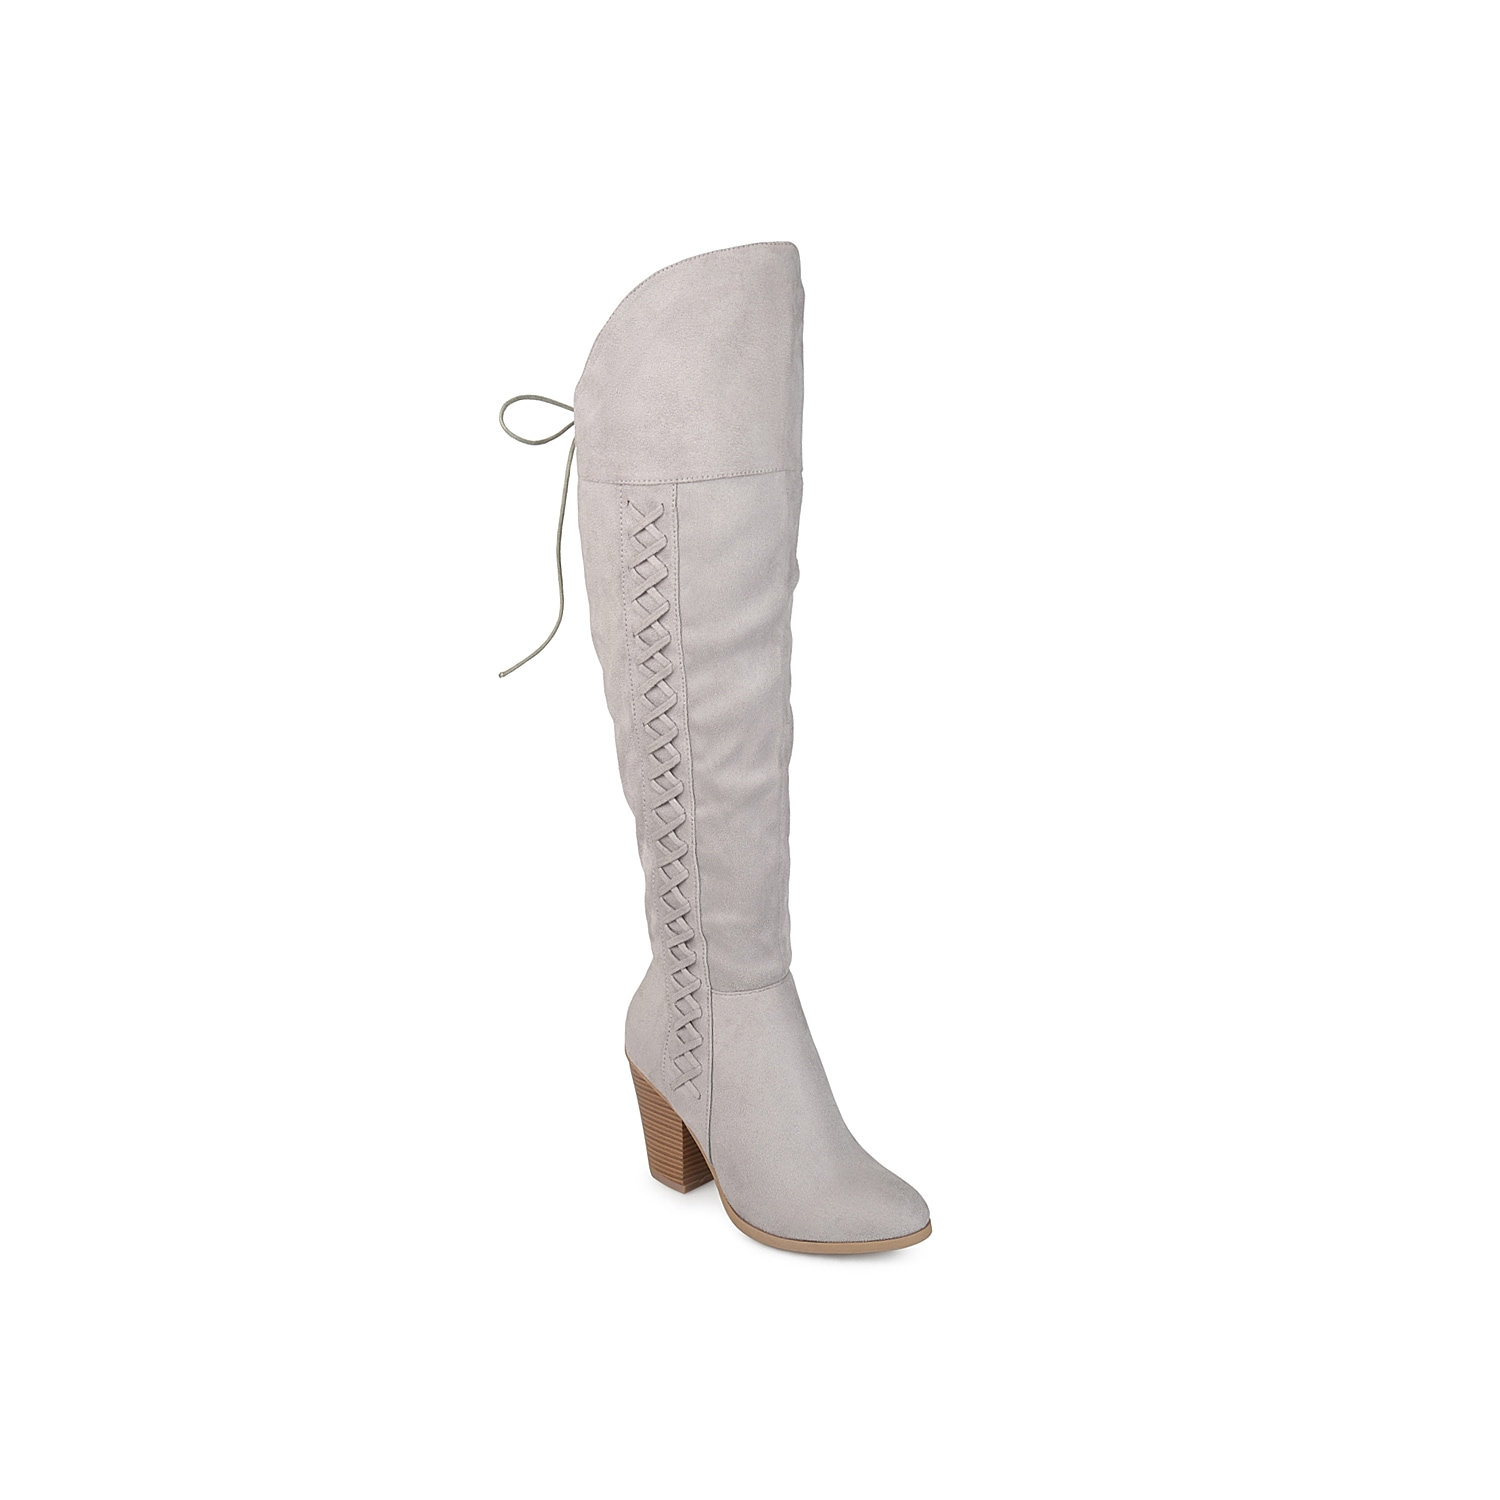 Grant a western-inspired makeover to your soles with this Spritz over the knee boot from Journee Collection. Boasting a braided vamp, this tall boot is designed with chic lace-up details and a tapering stacked heel to impart attention-grabbing appeal.Click here for Boot Measuring Guide.